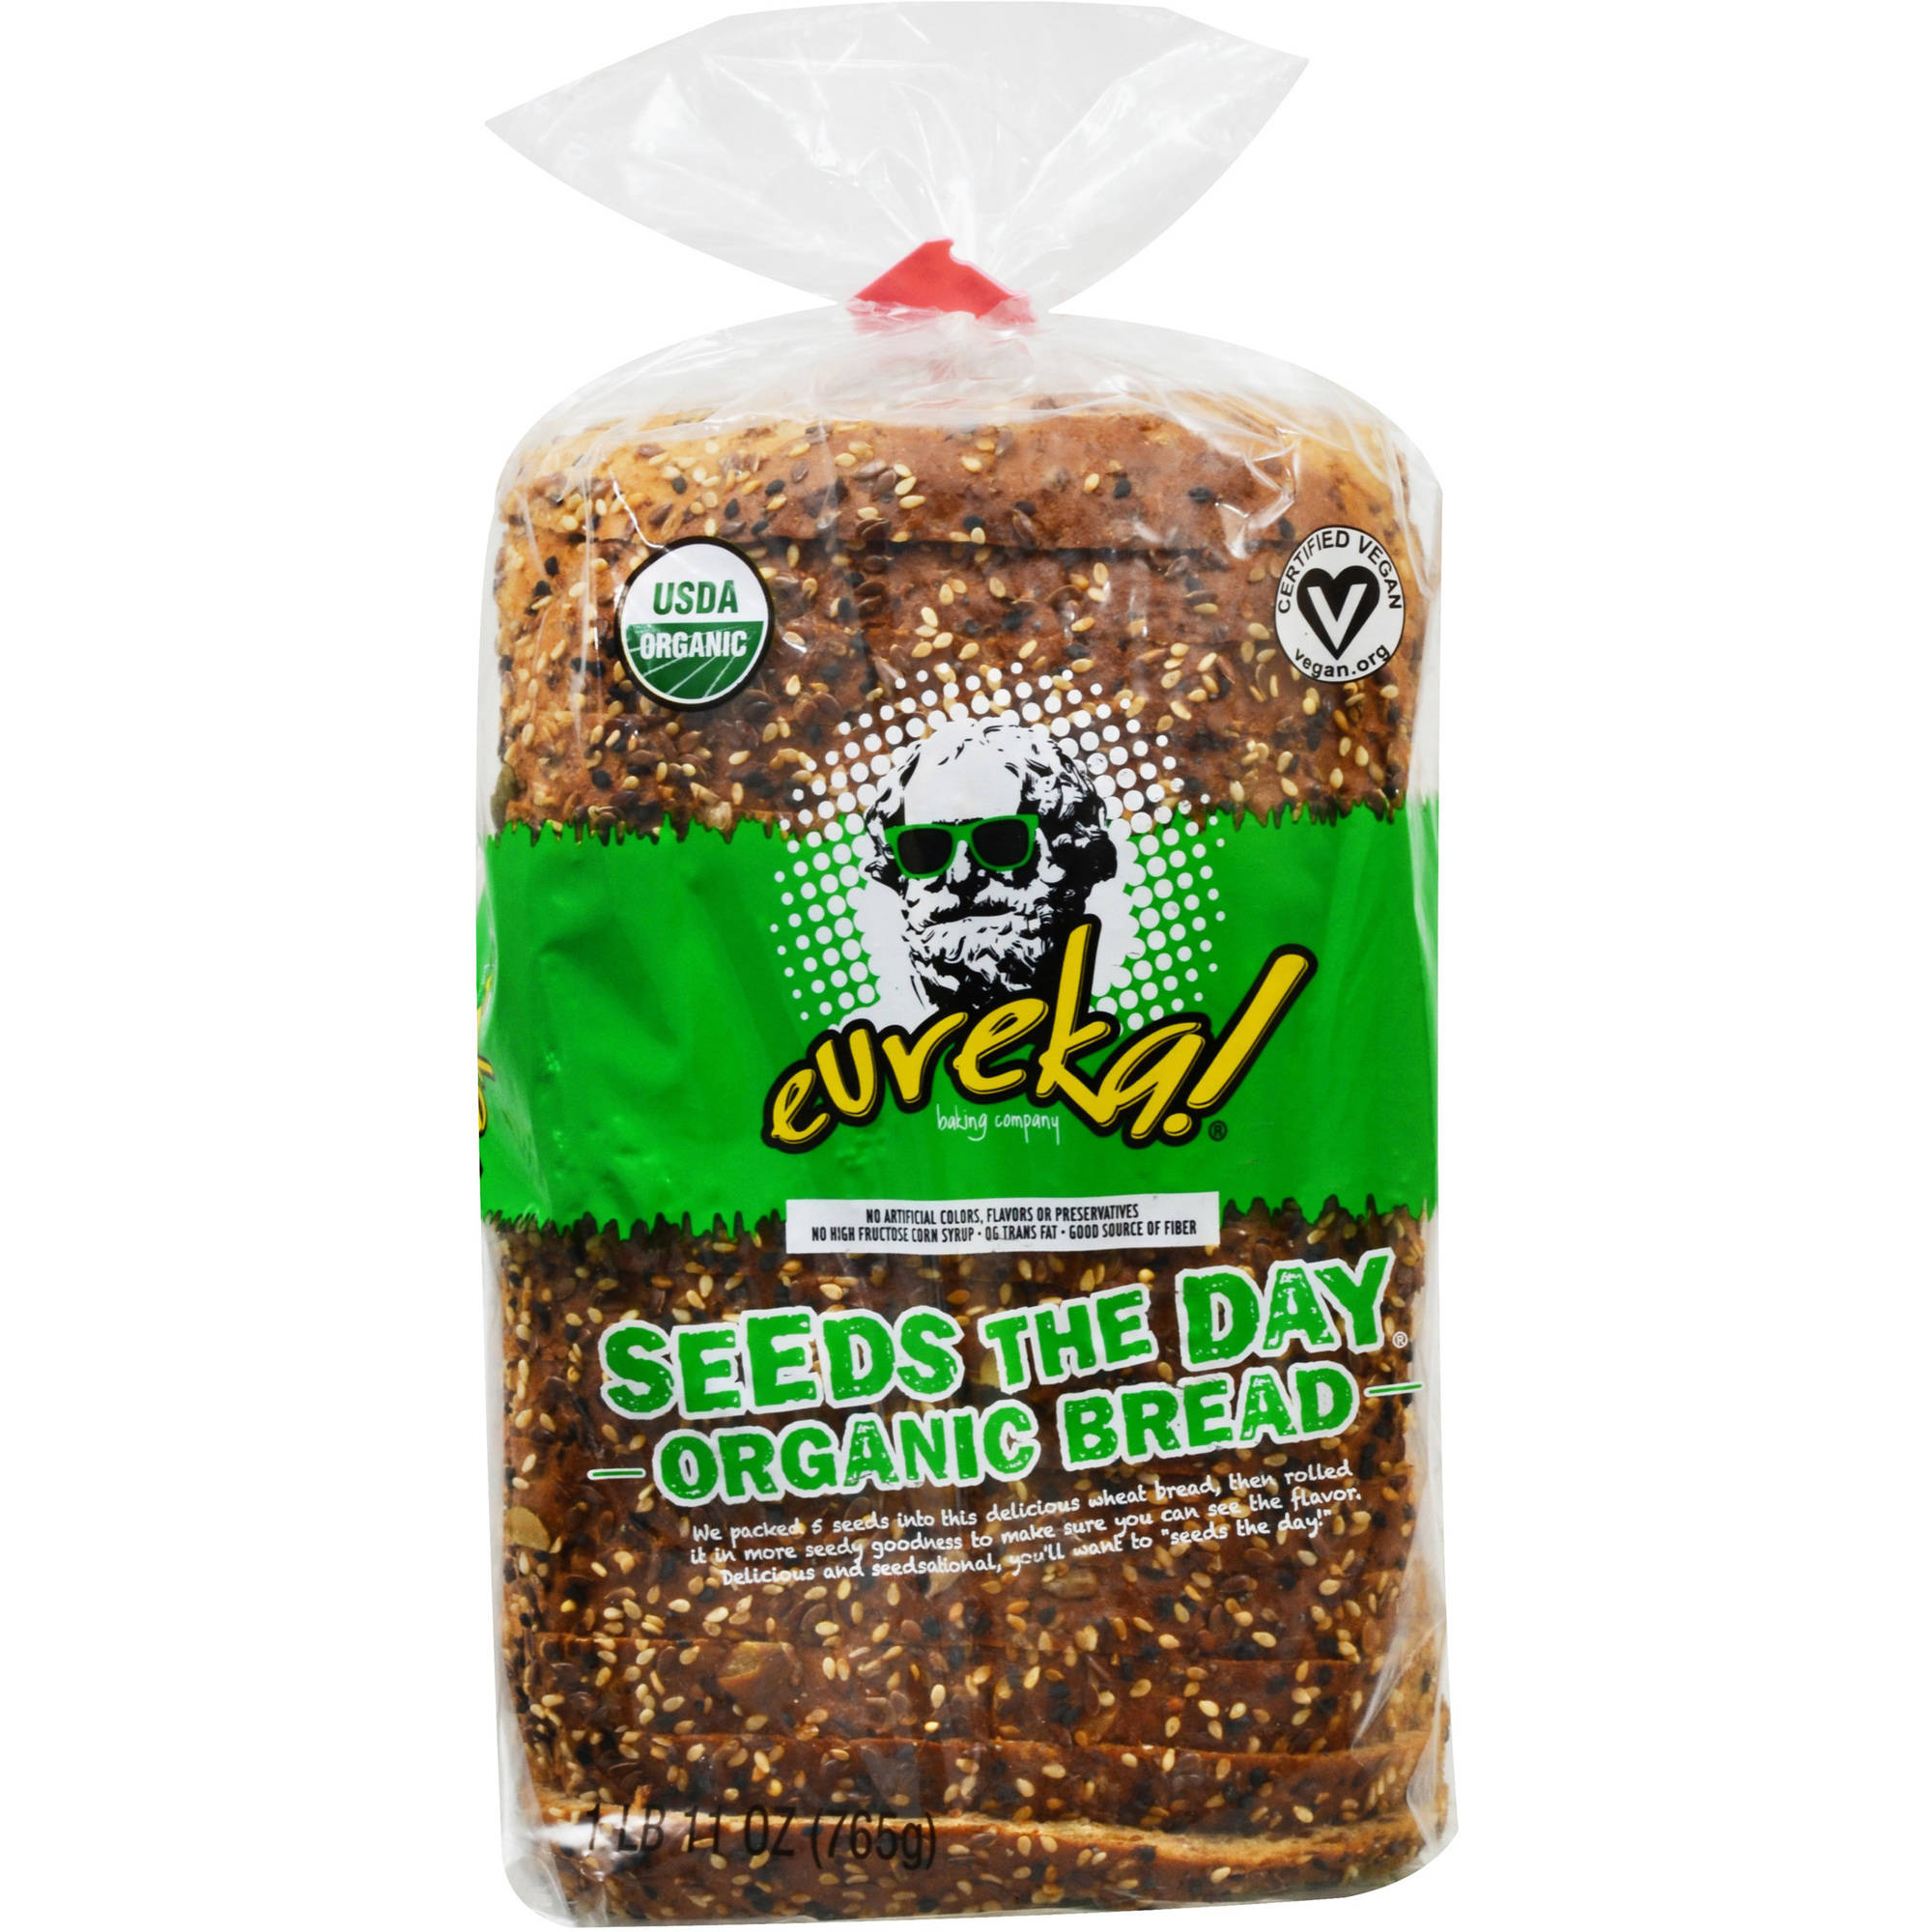 eureka! Seeds the Day Bread, 27 oz